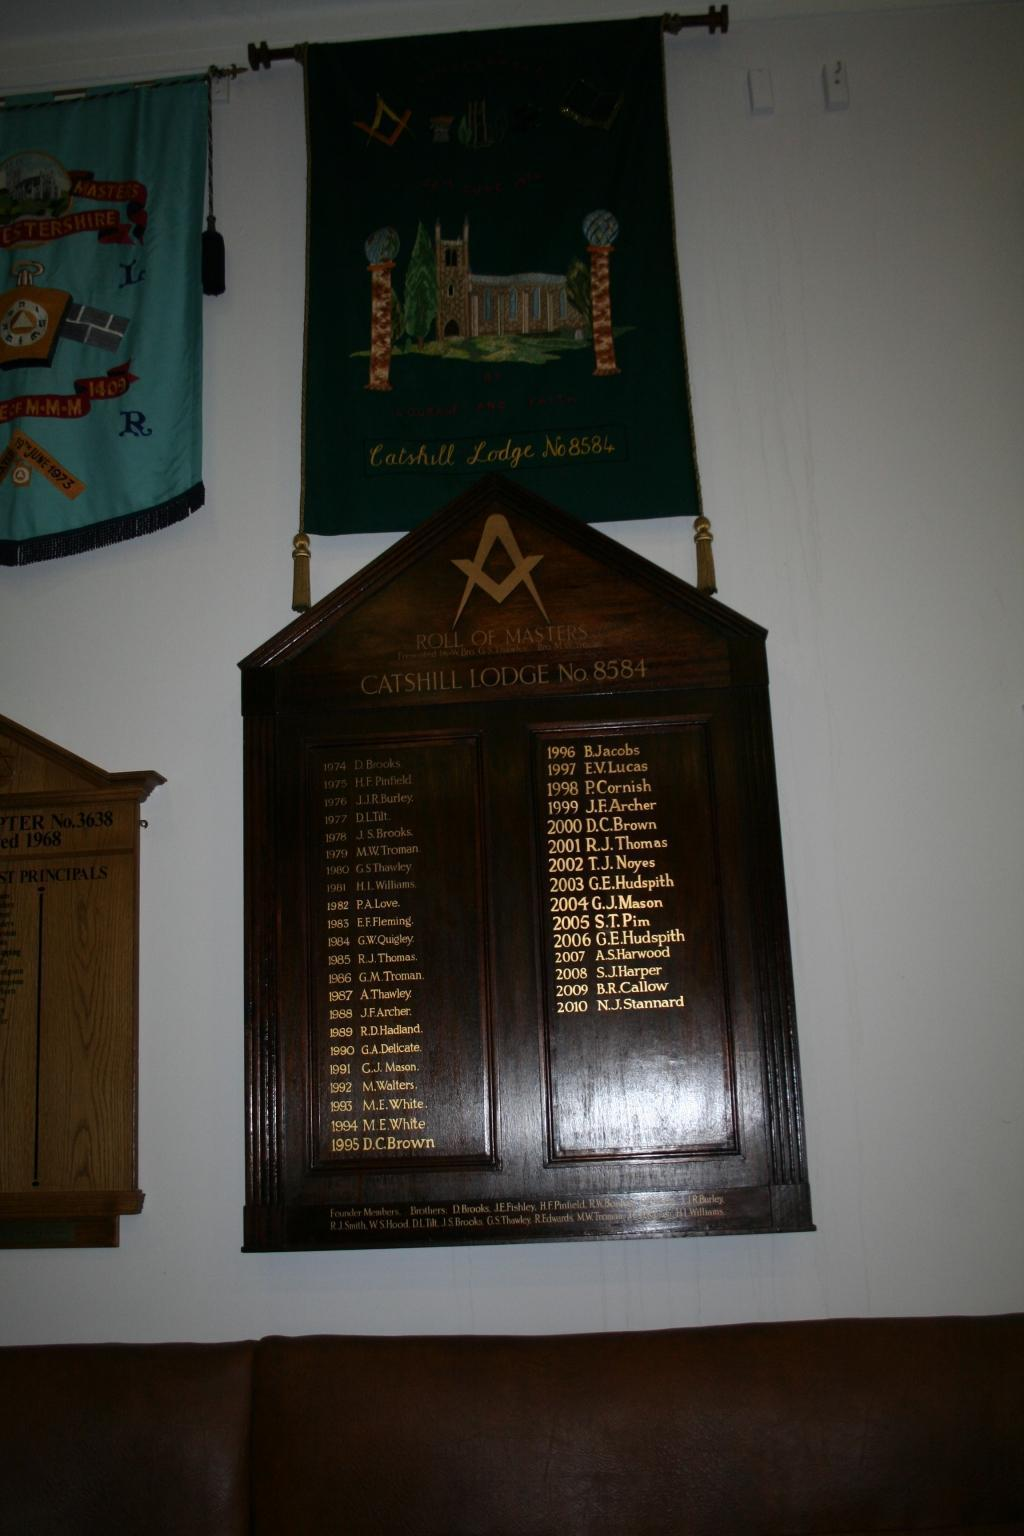 catshill lodge installation 2013 004.JPG